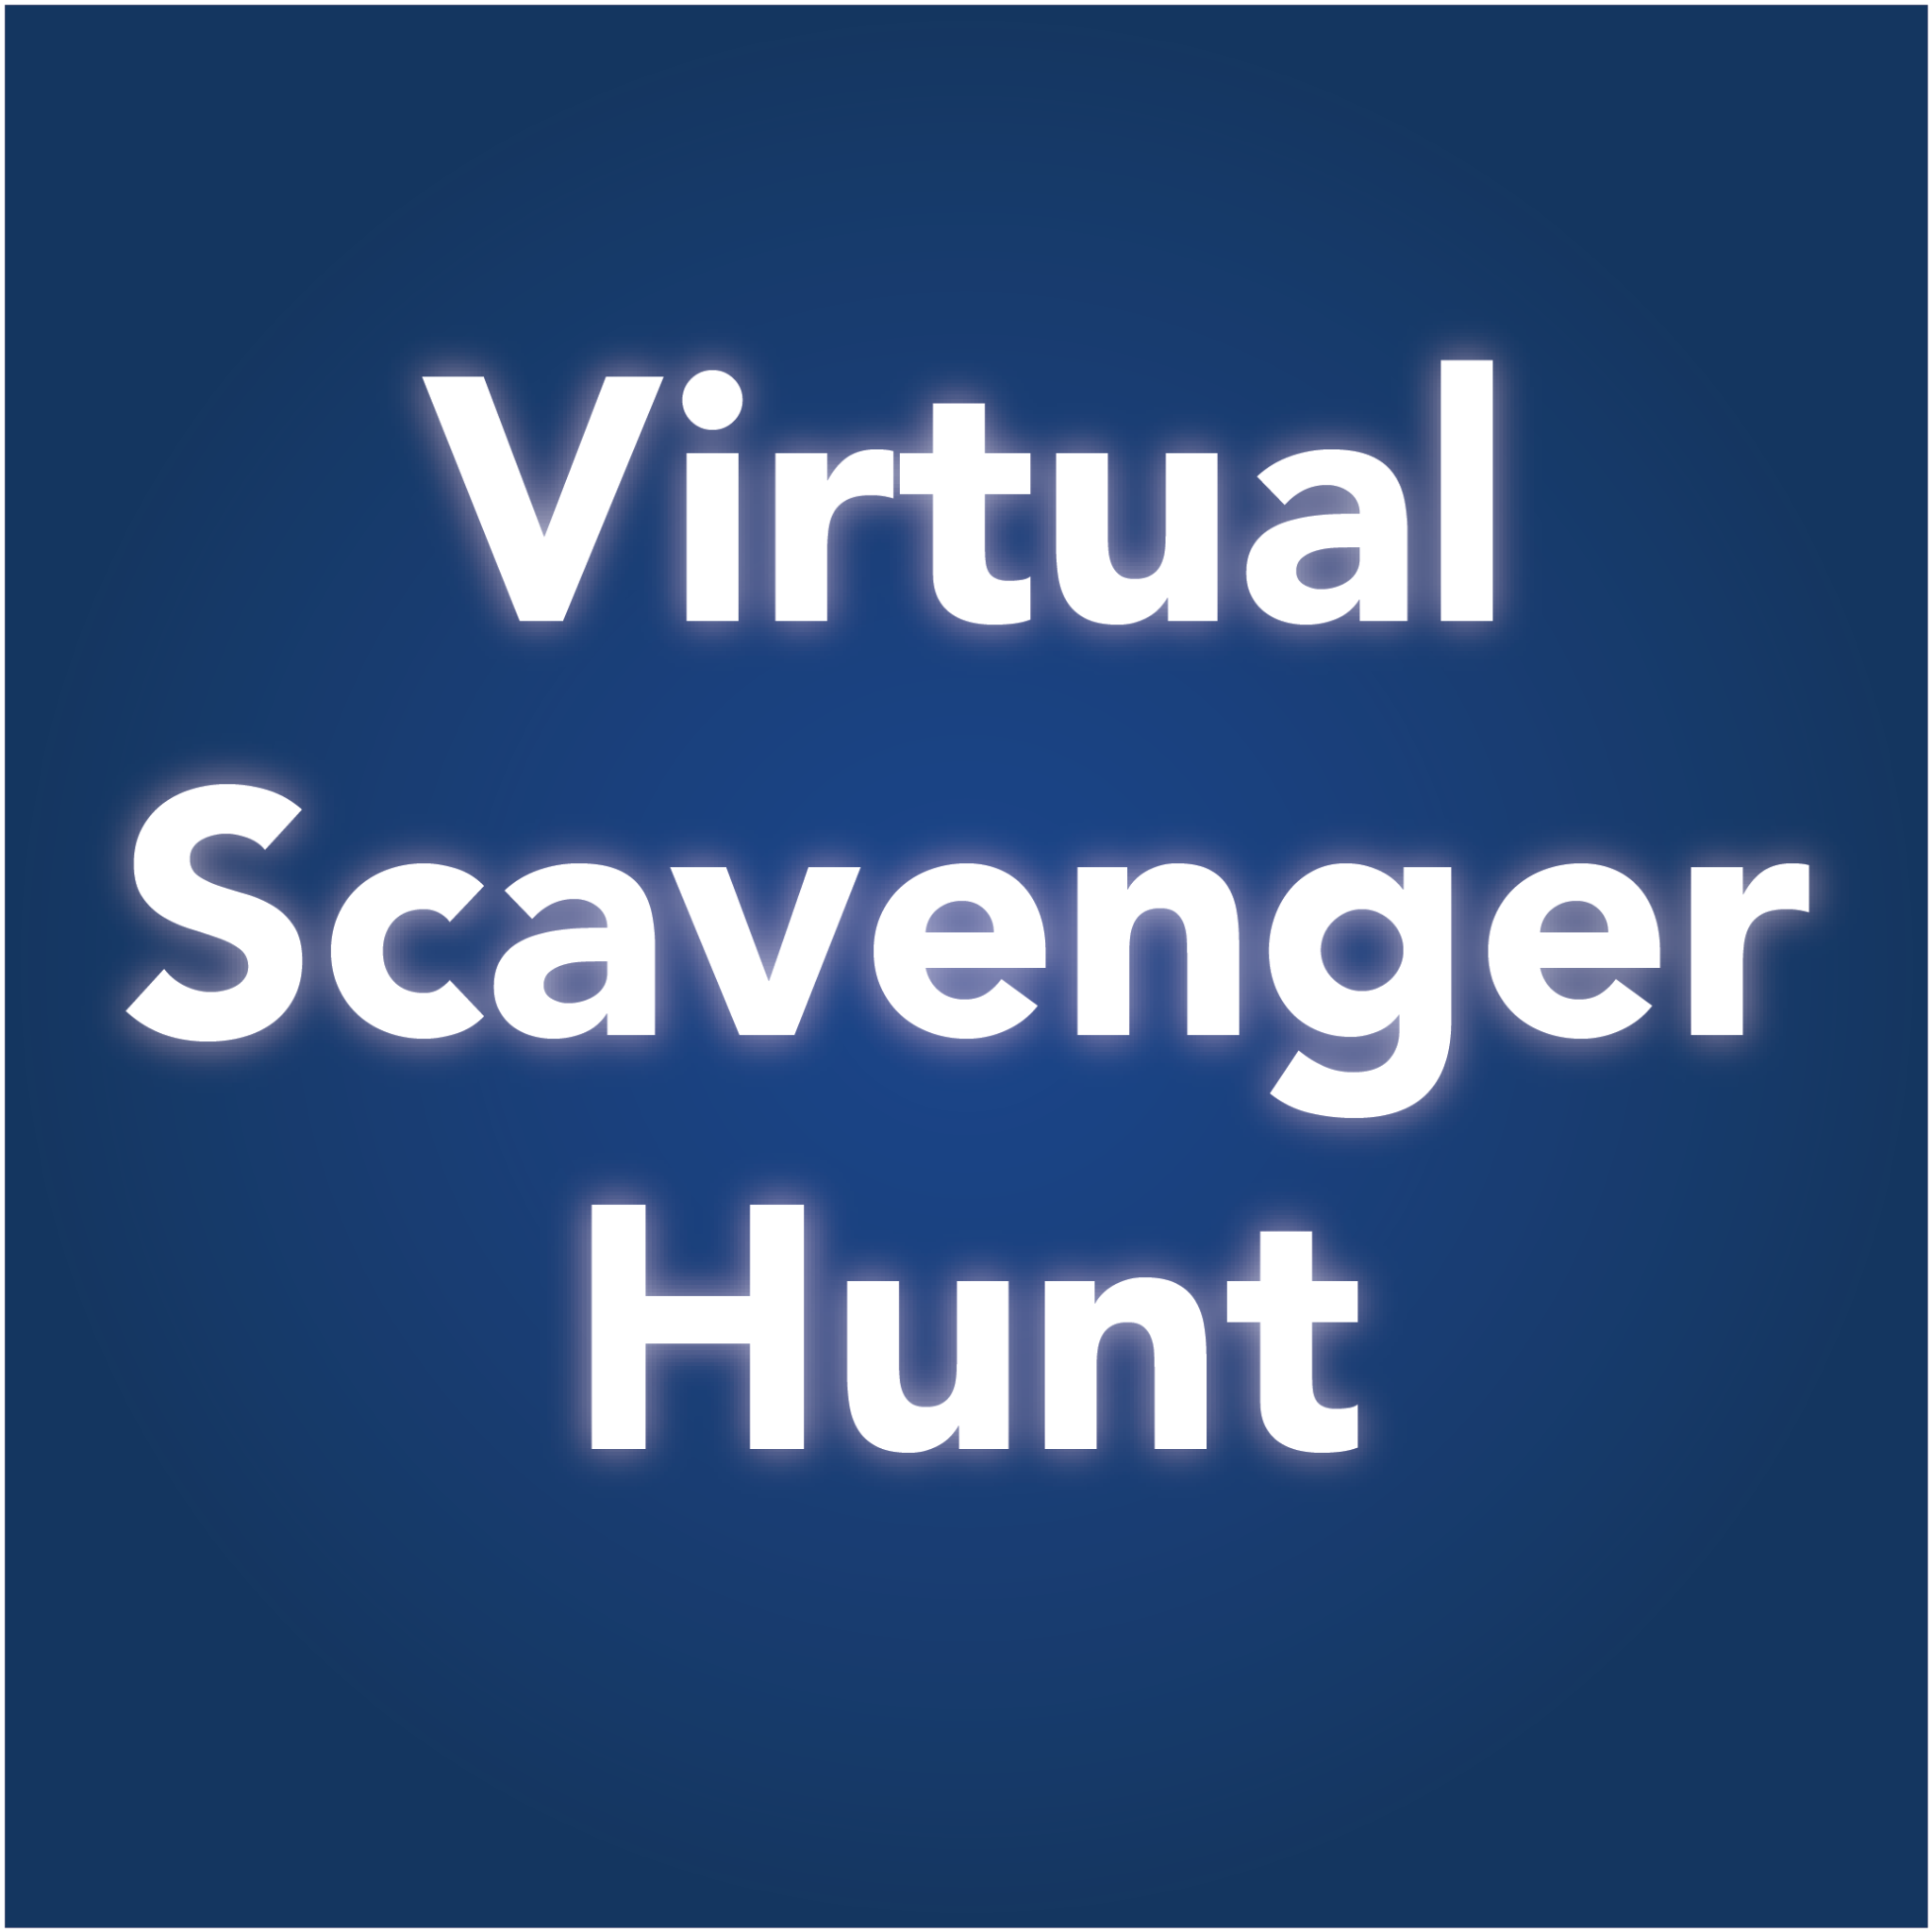 Download: Virtual Scavenger Hunt